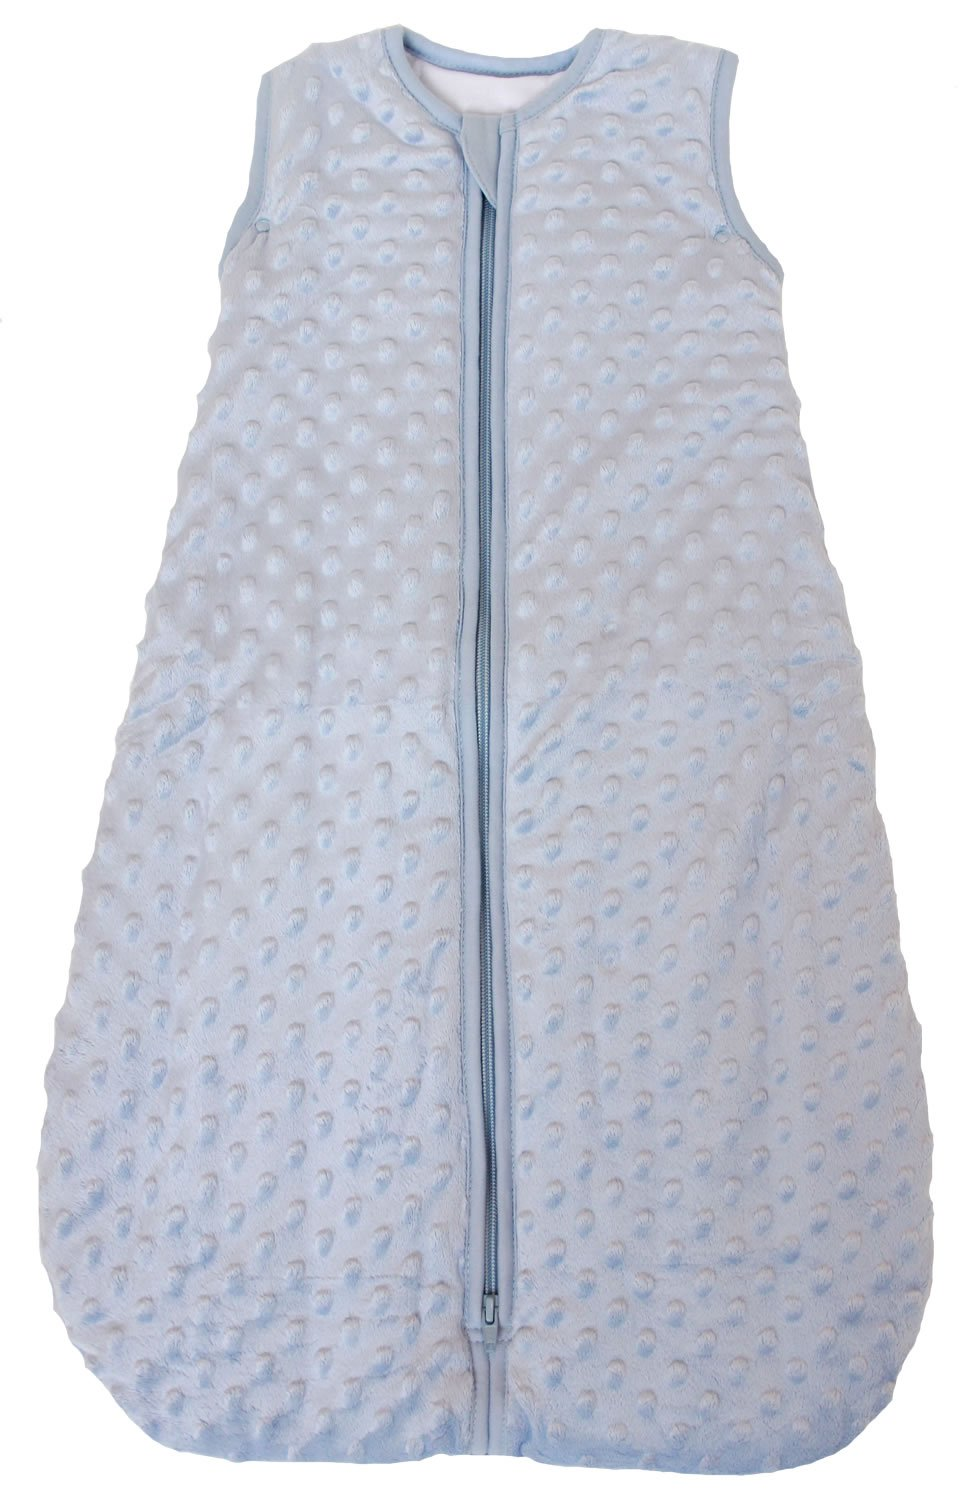 Baby Sleeping Bag ''Minky Dot'' Blue, Quilted Winter Model, 2.5 Tog (Large (22 mos - 3T)) by Baby in a Bag